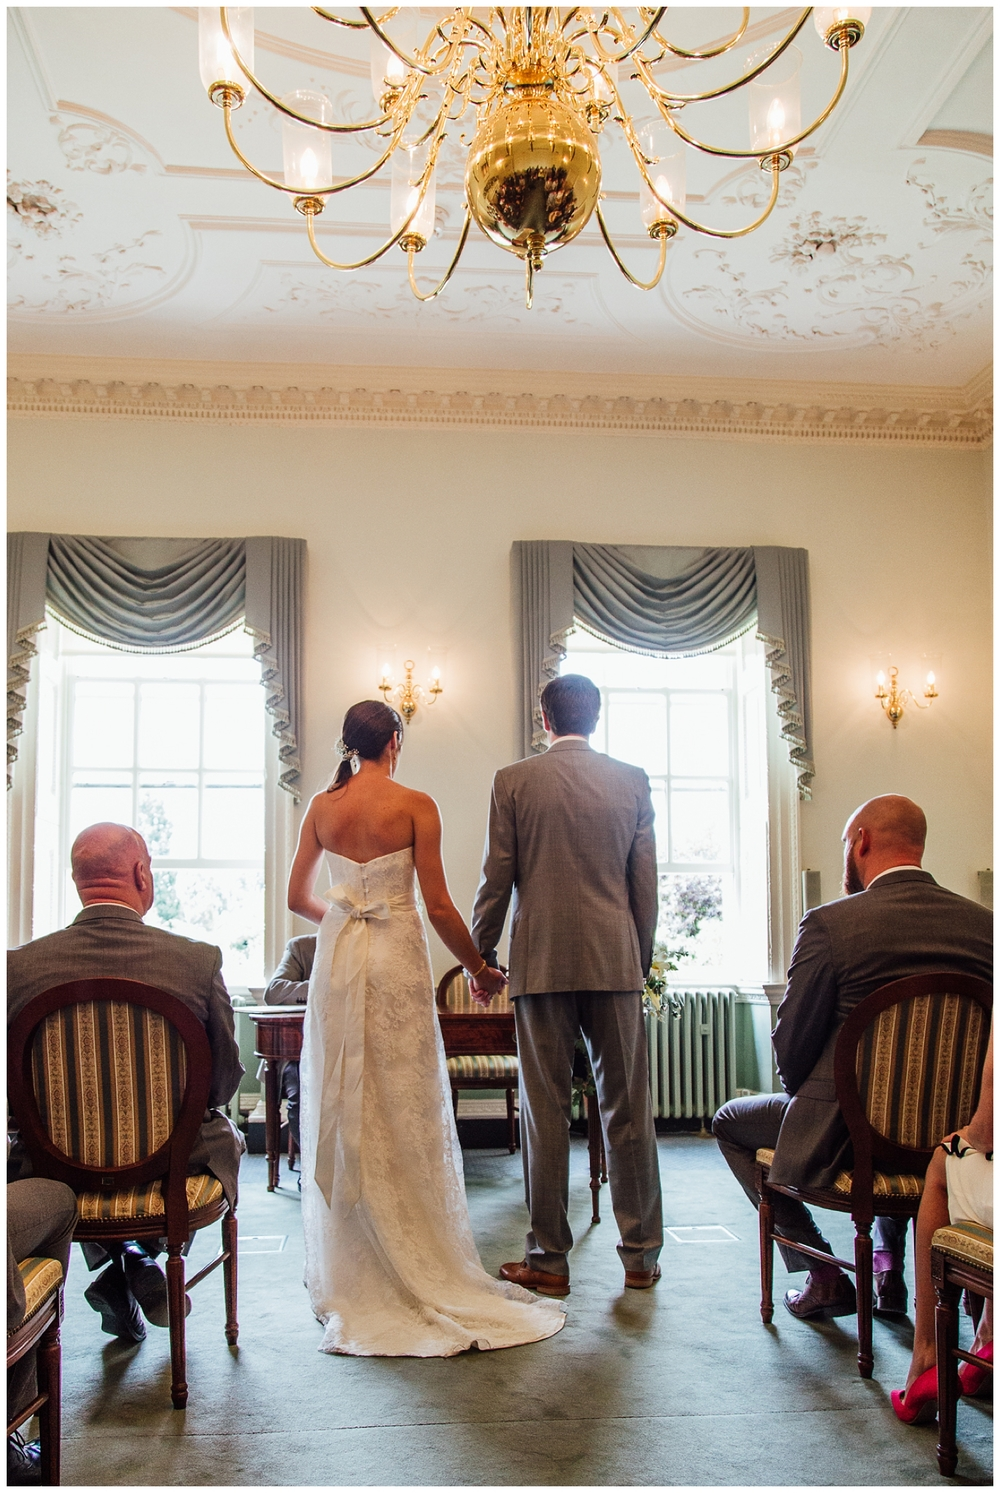 Nikki_Cooper_Photography_Lucy&Scott_Wedding_Photos_The_Crab_Tree_Pub_Horsham_1051.jpg